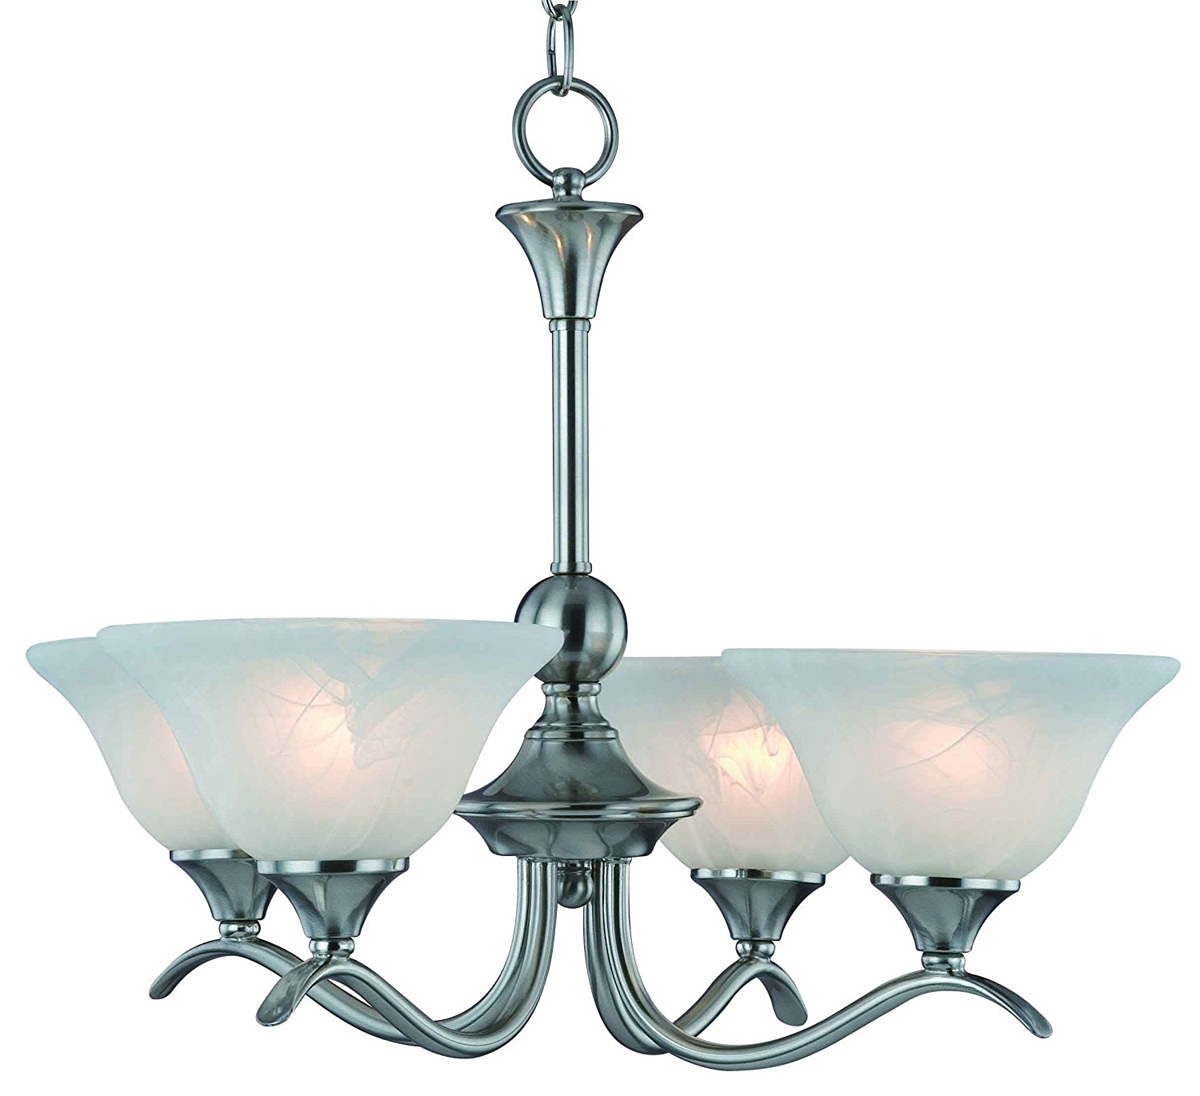 10-4029 Satin Nickel 4-Light Chandelier